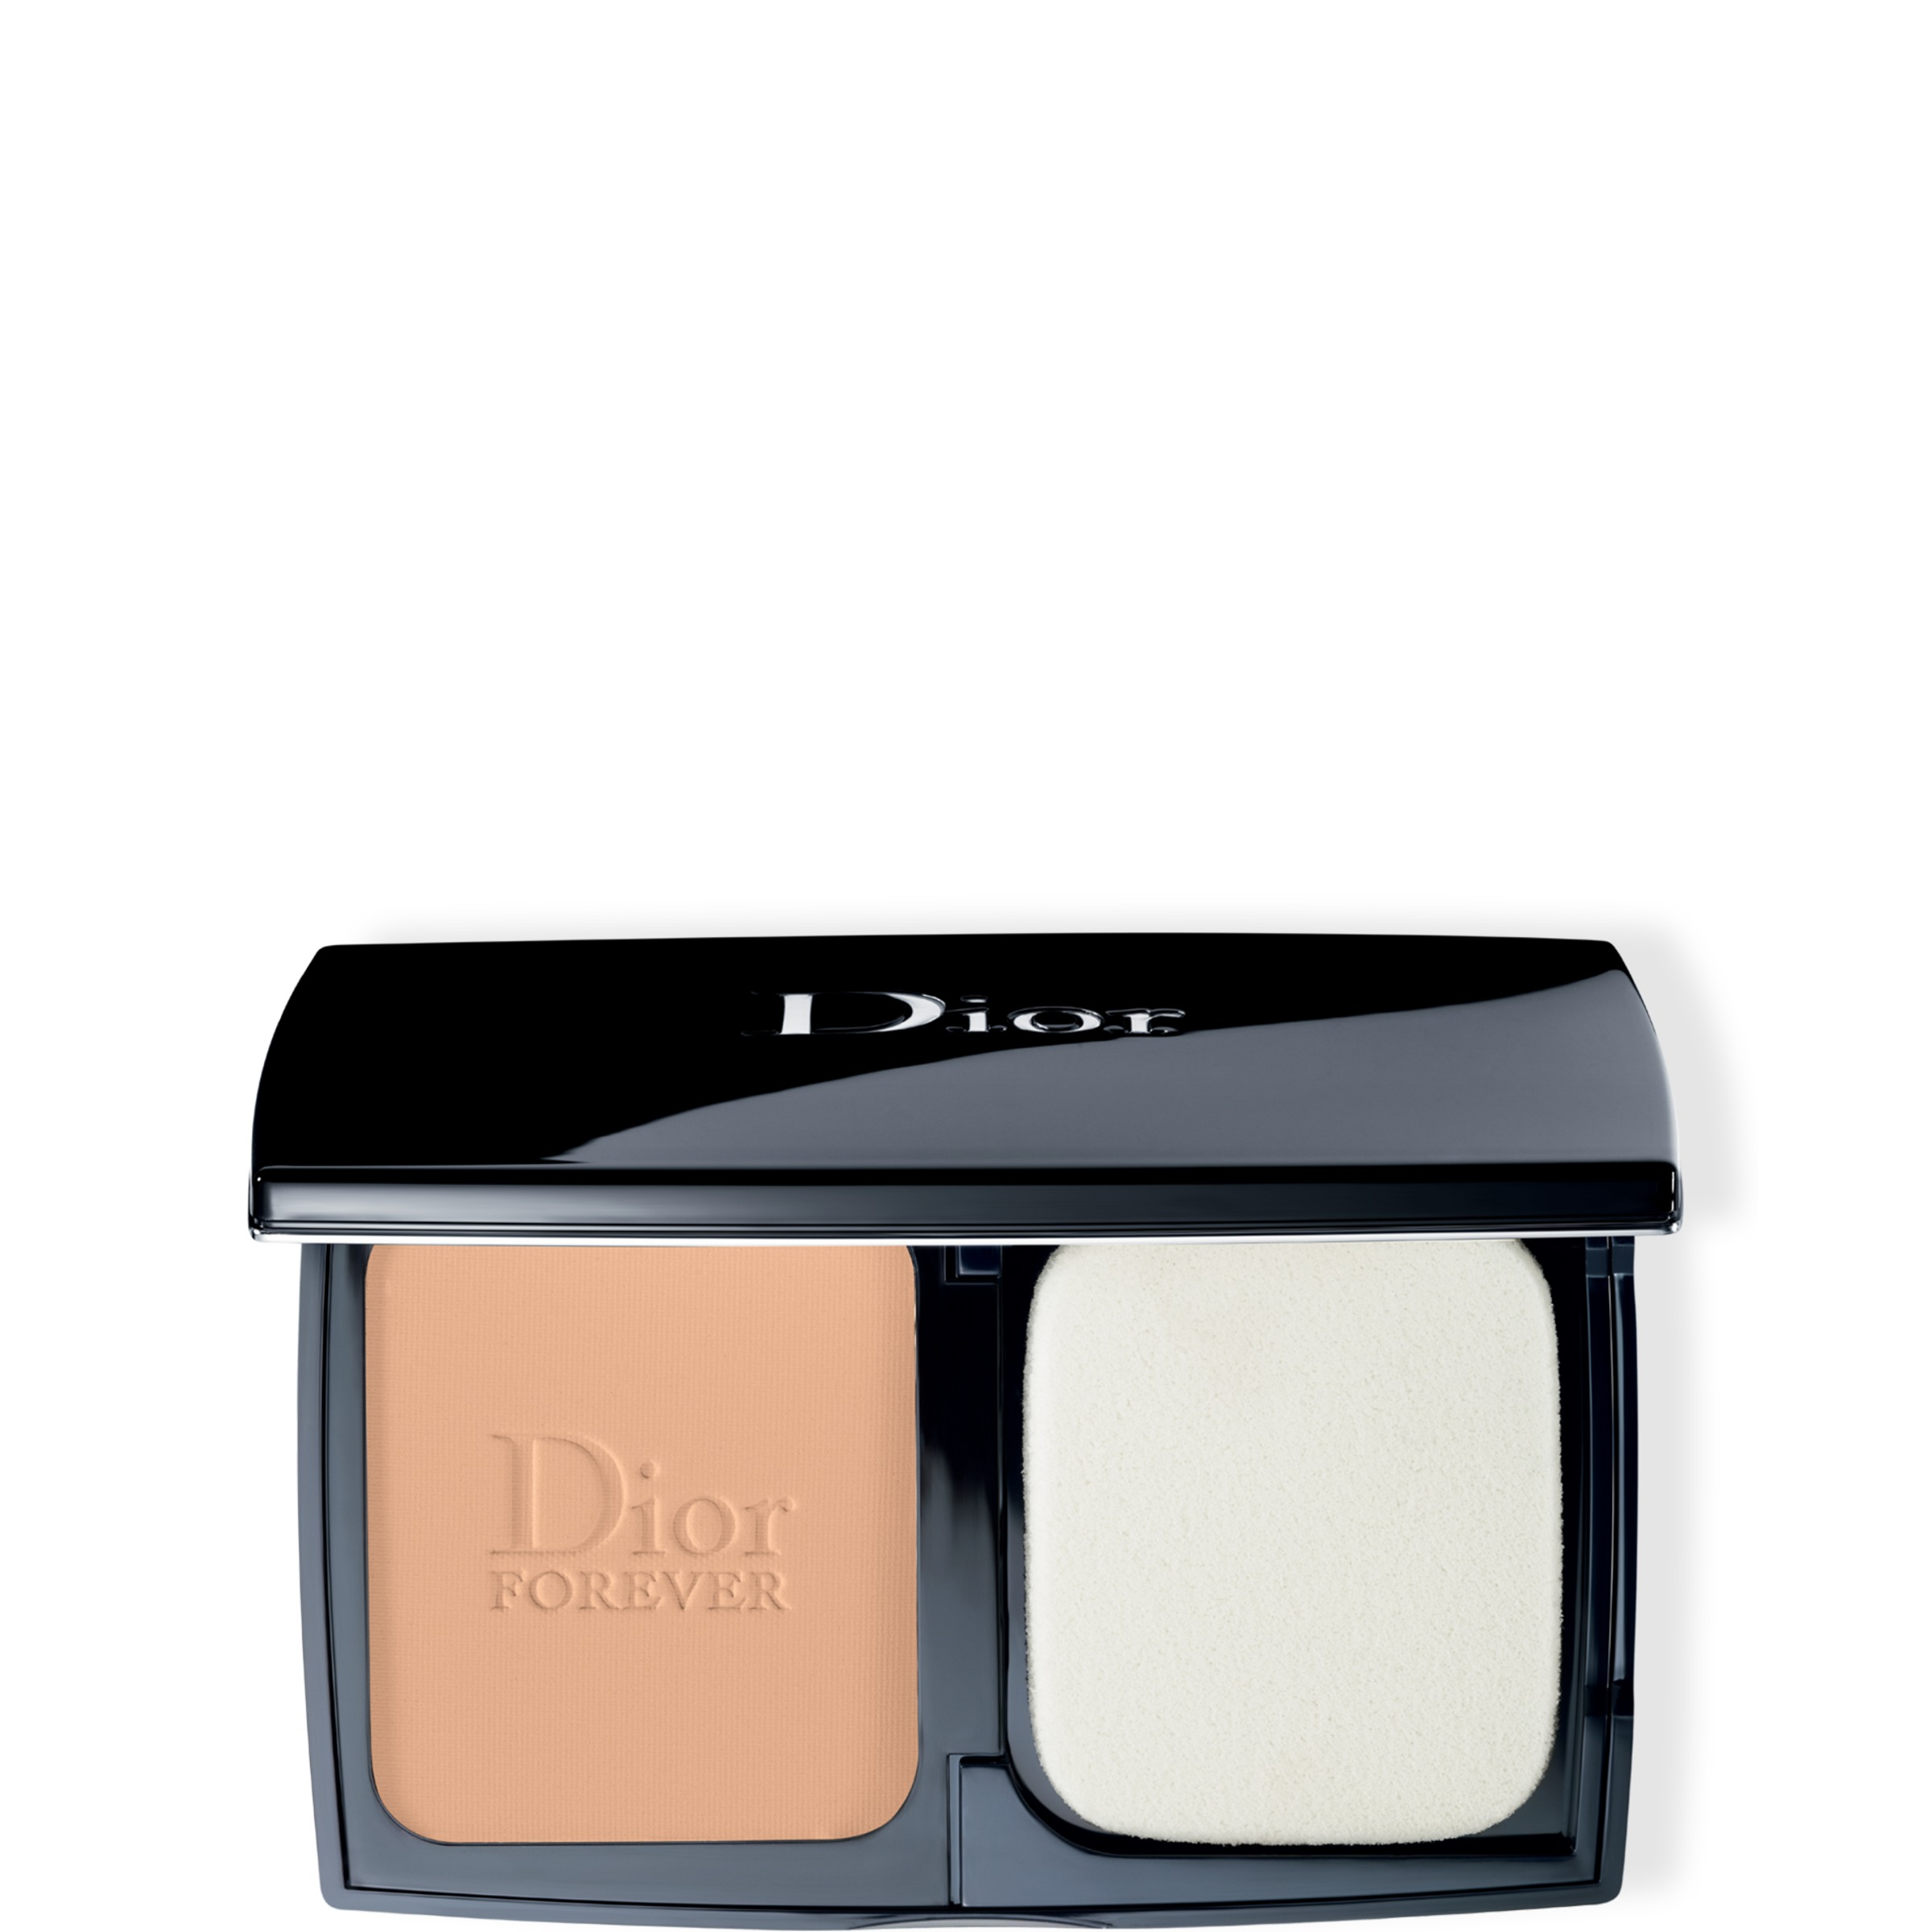 Diorskin Forever Foundation Compact 022Cameo